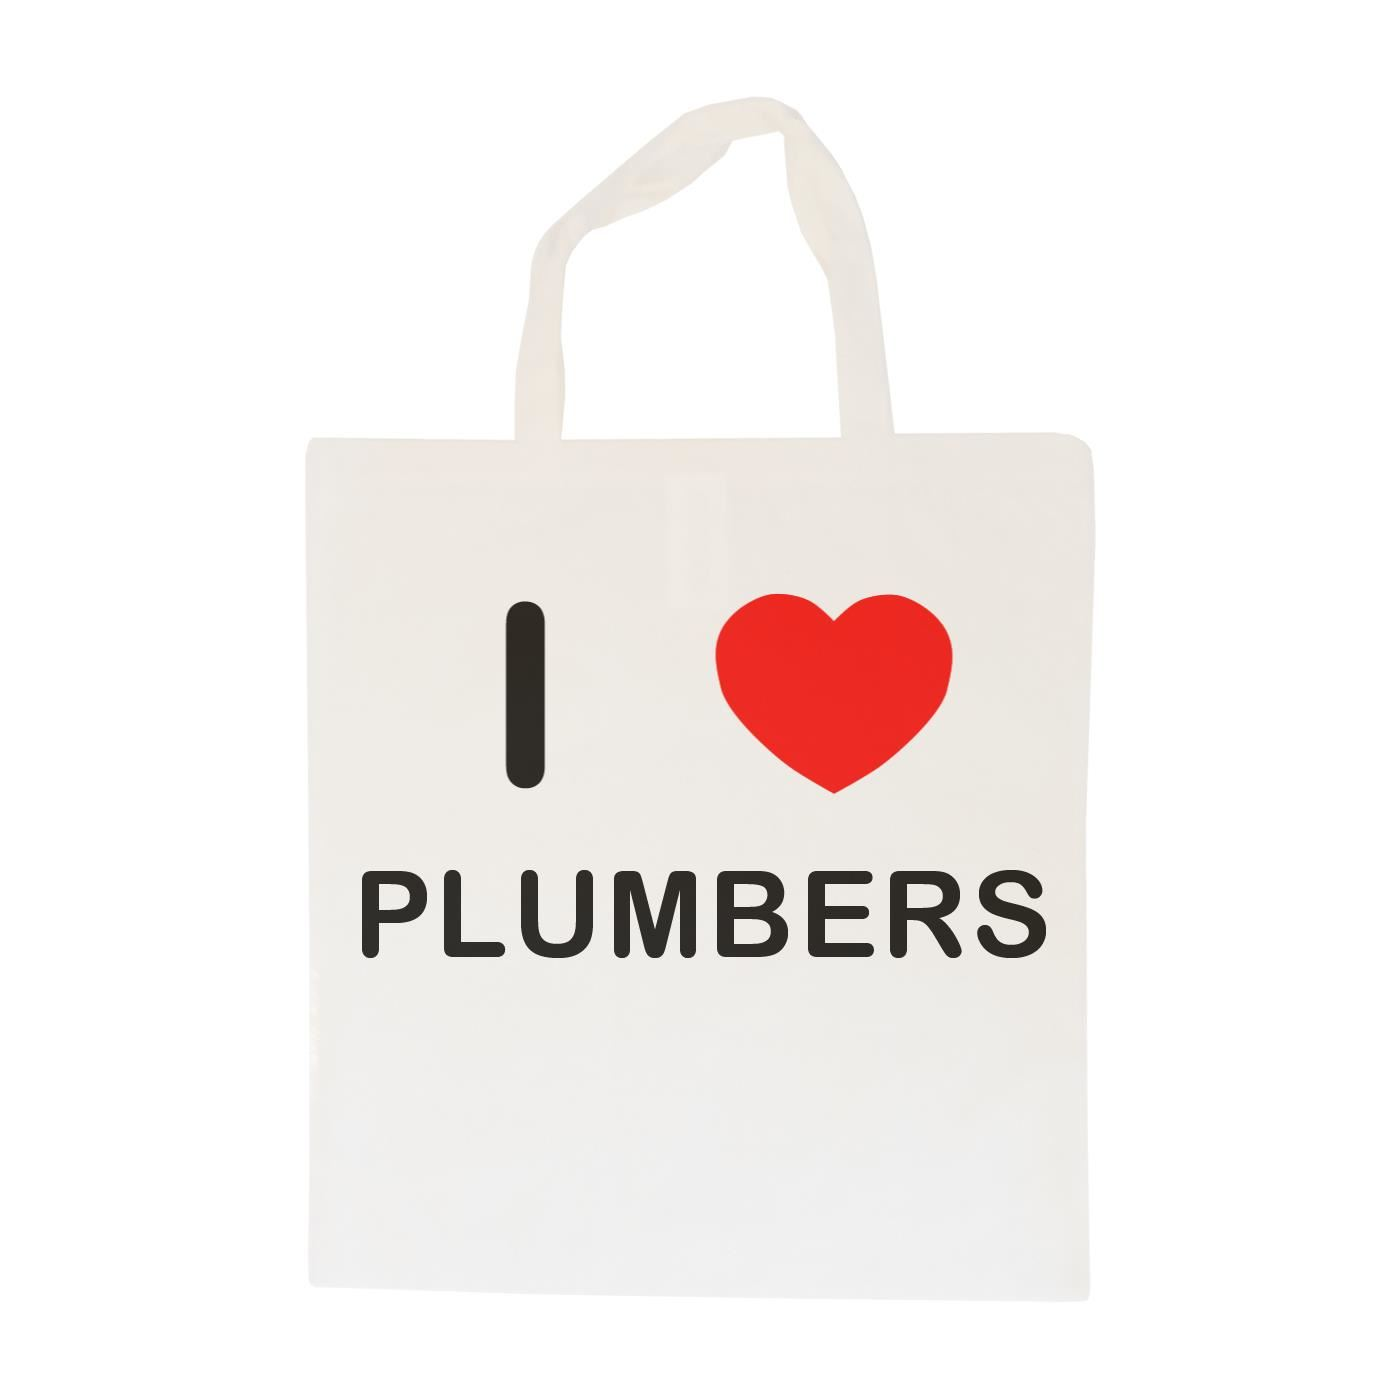 I Love Plumbers - Cotton Bag | Size choice Tote, Shopper or Sling